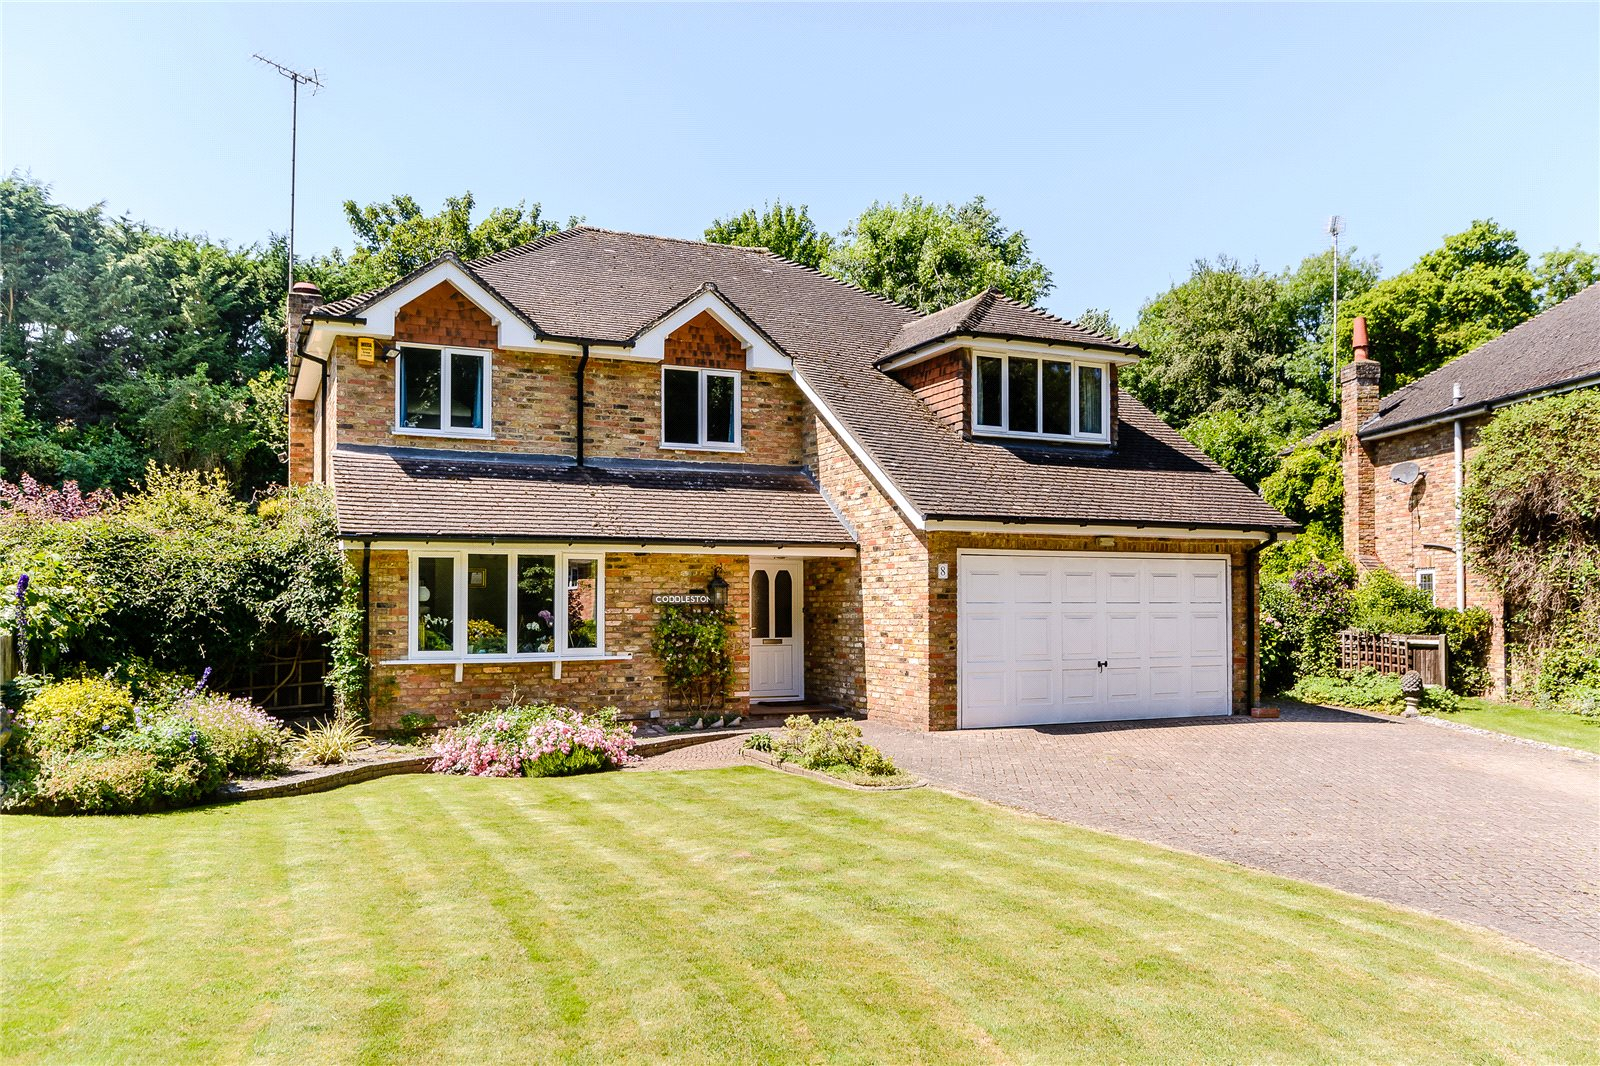 Single Family Home for Sale at Russett Hill, Chalfont St Peter, Buckinghamshire, SL9 Chalfont St Peter, England